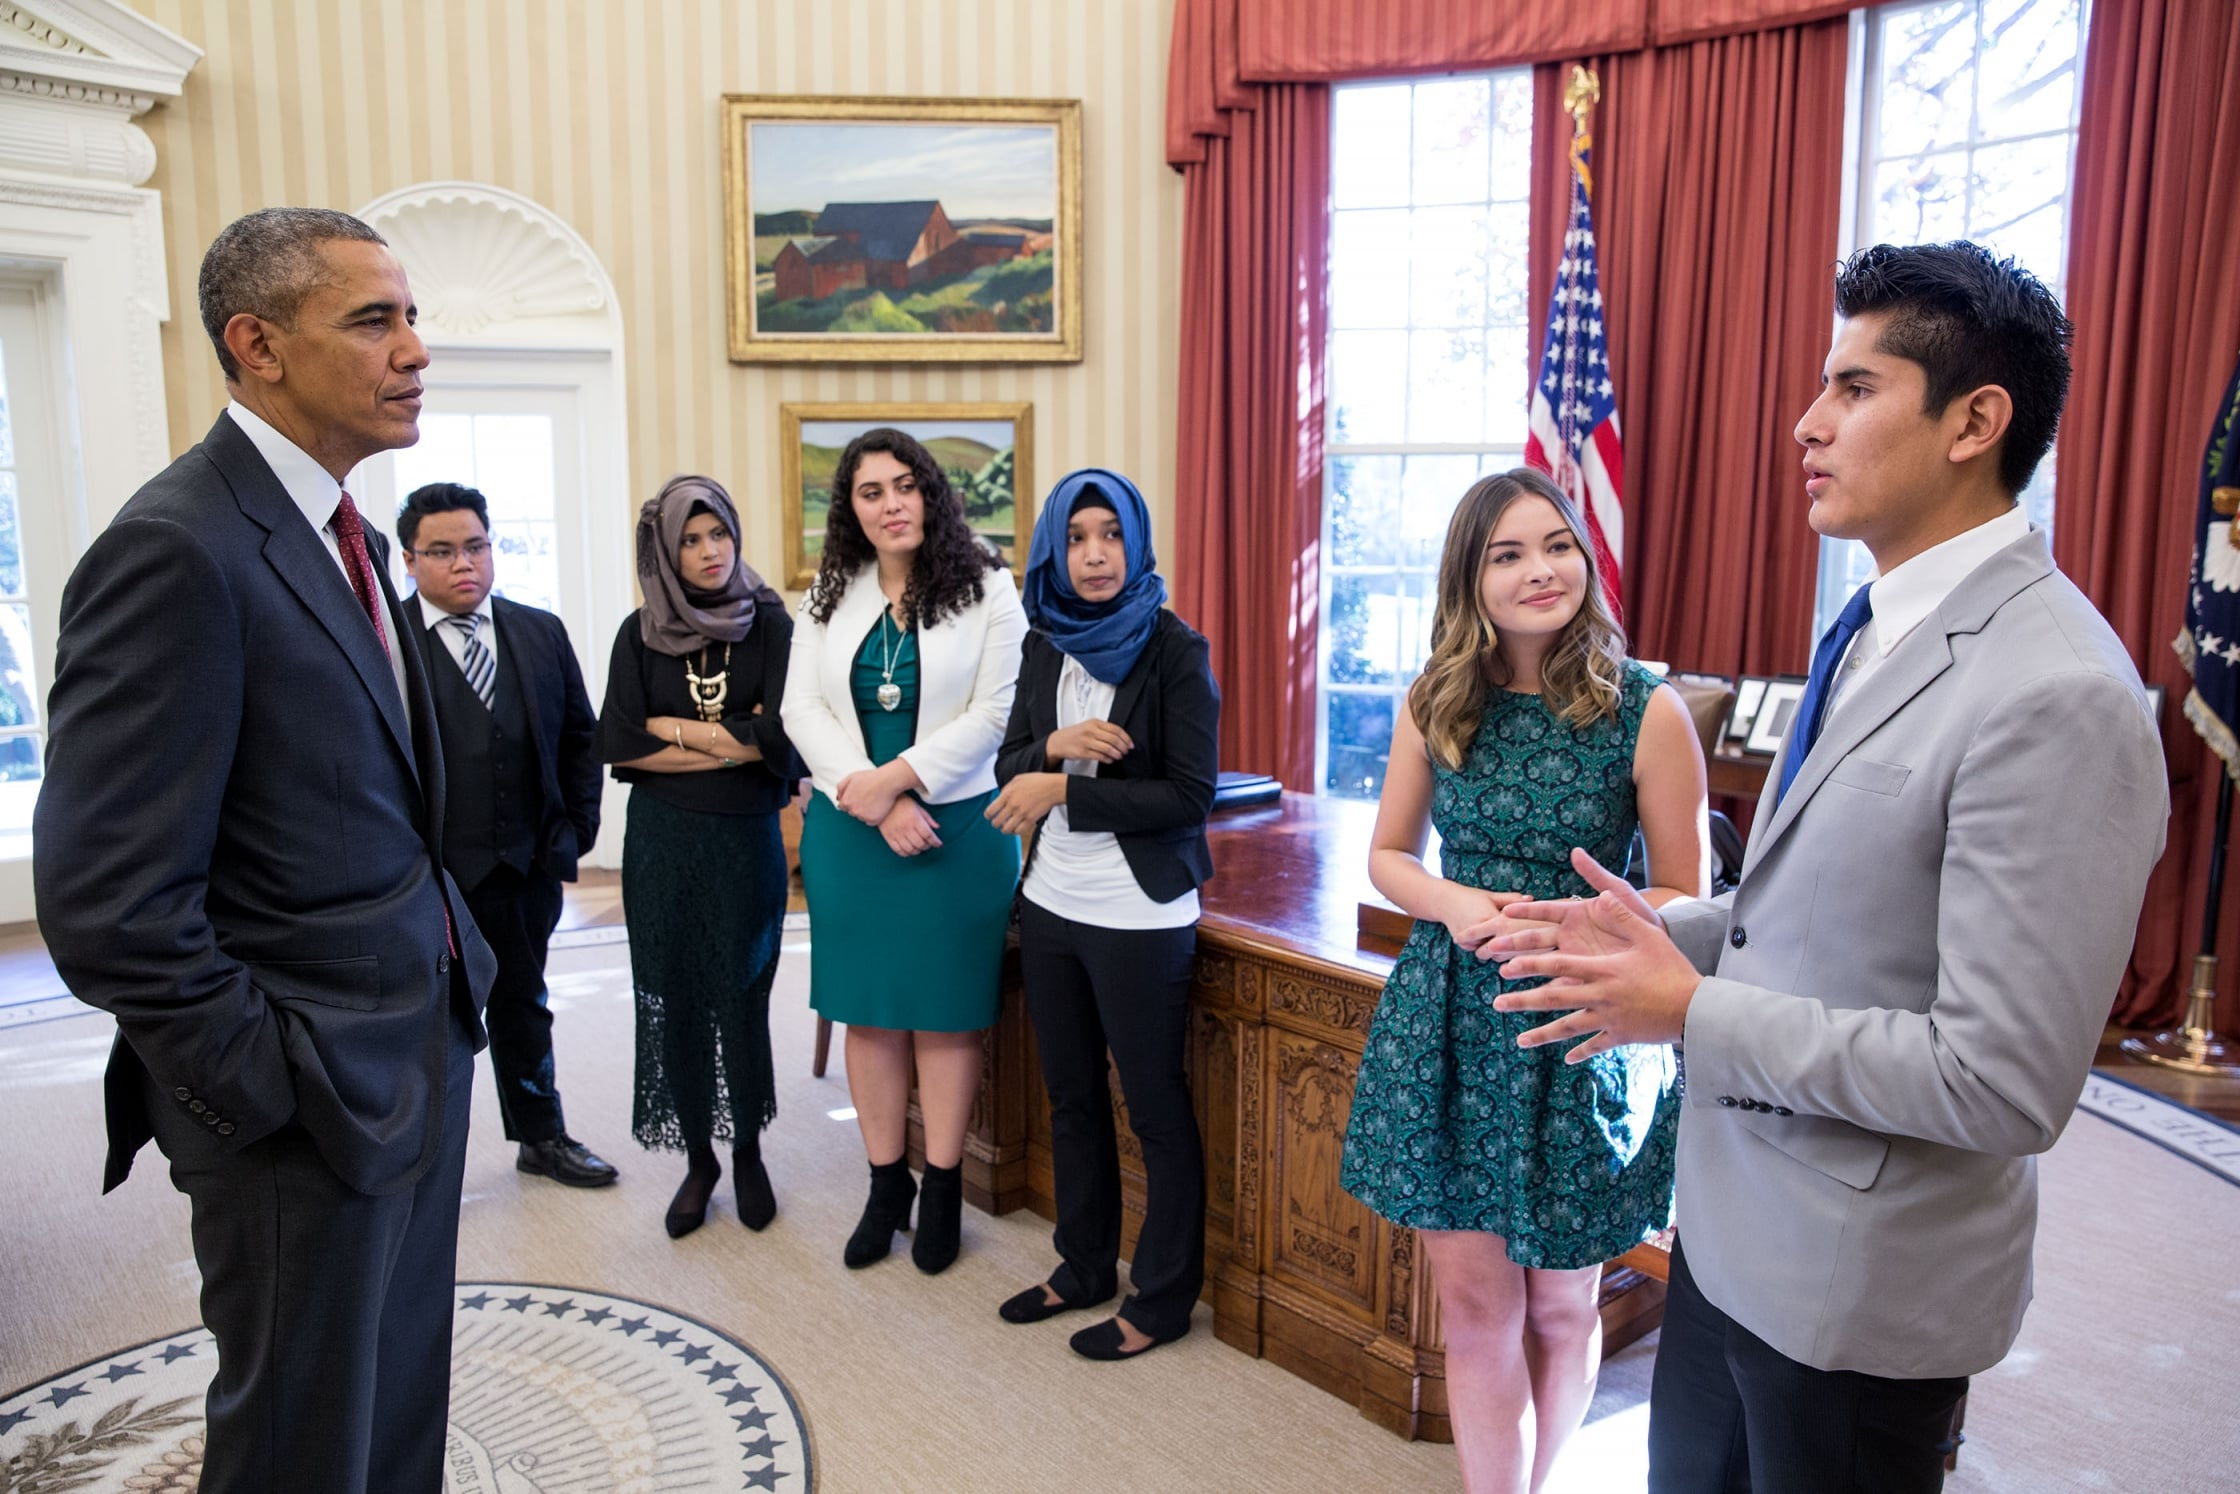 President Barack Obama greets winners of youth entrepreneurship competitions in the Oval Office, Nov. 25, 2015. The President greets from left to right:Joseph Fortuno, Jannatul Rowshan, Crystal Sanchez, Urbana Anam, Rachel Gorgas, and Kenneth Huertas. (Photo Credit: White House/Pete Souza)